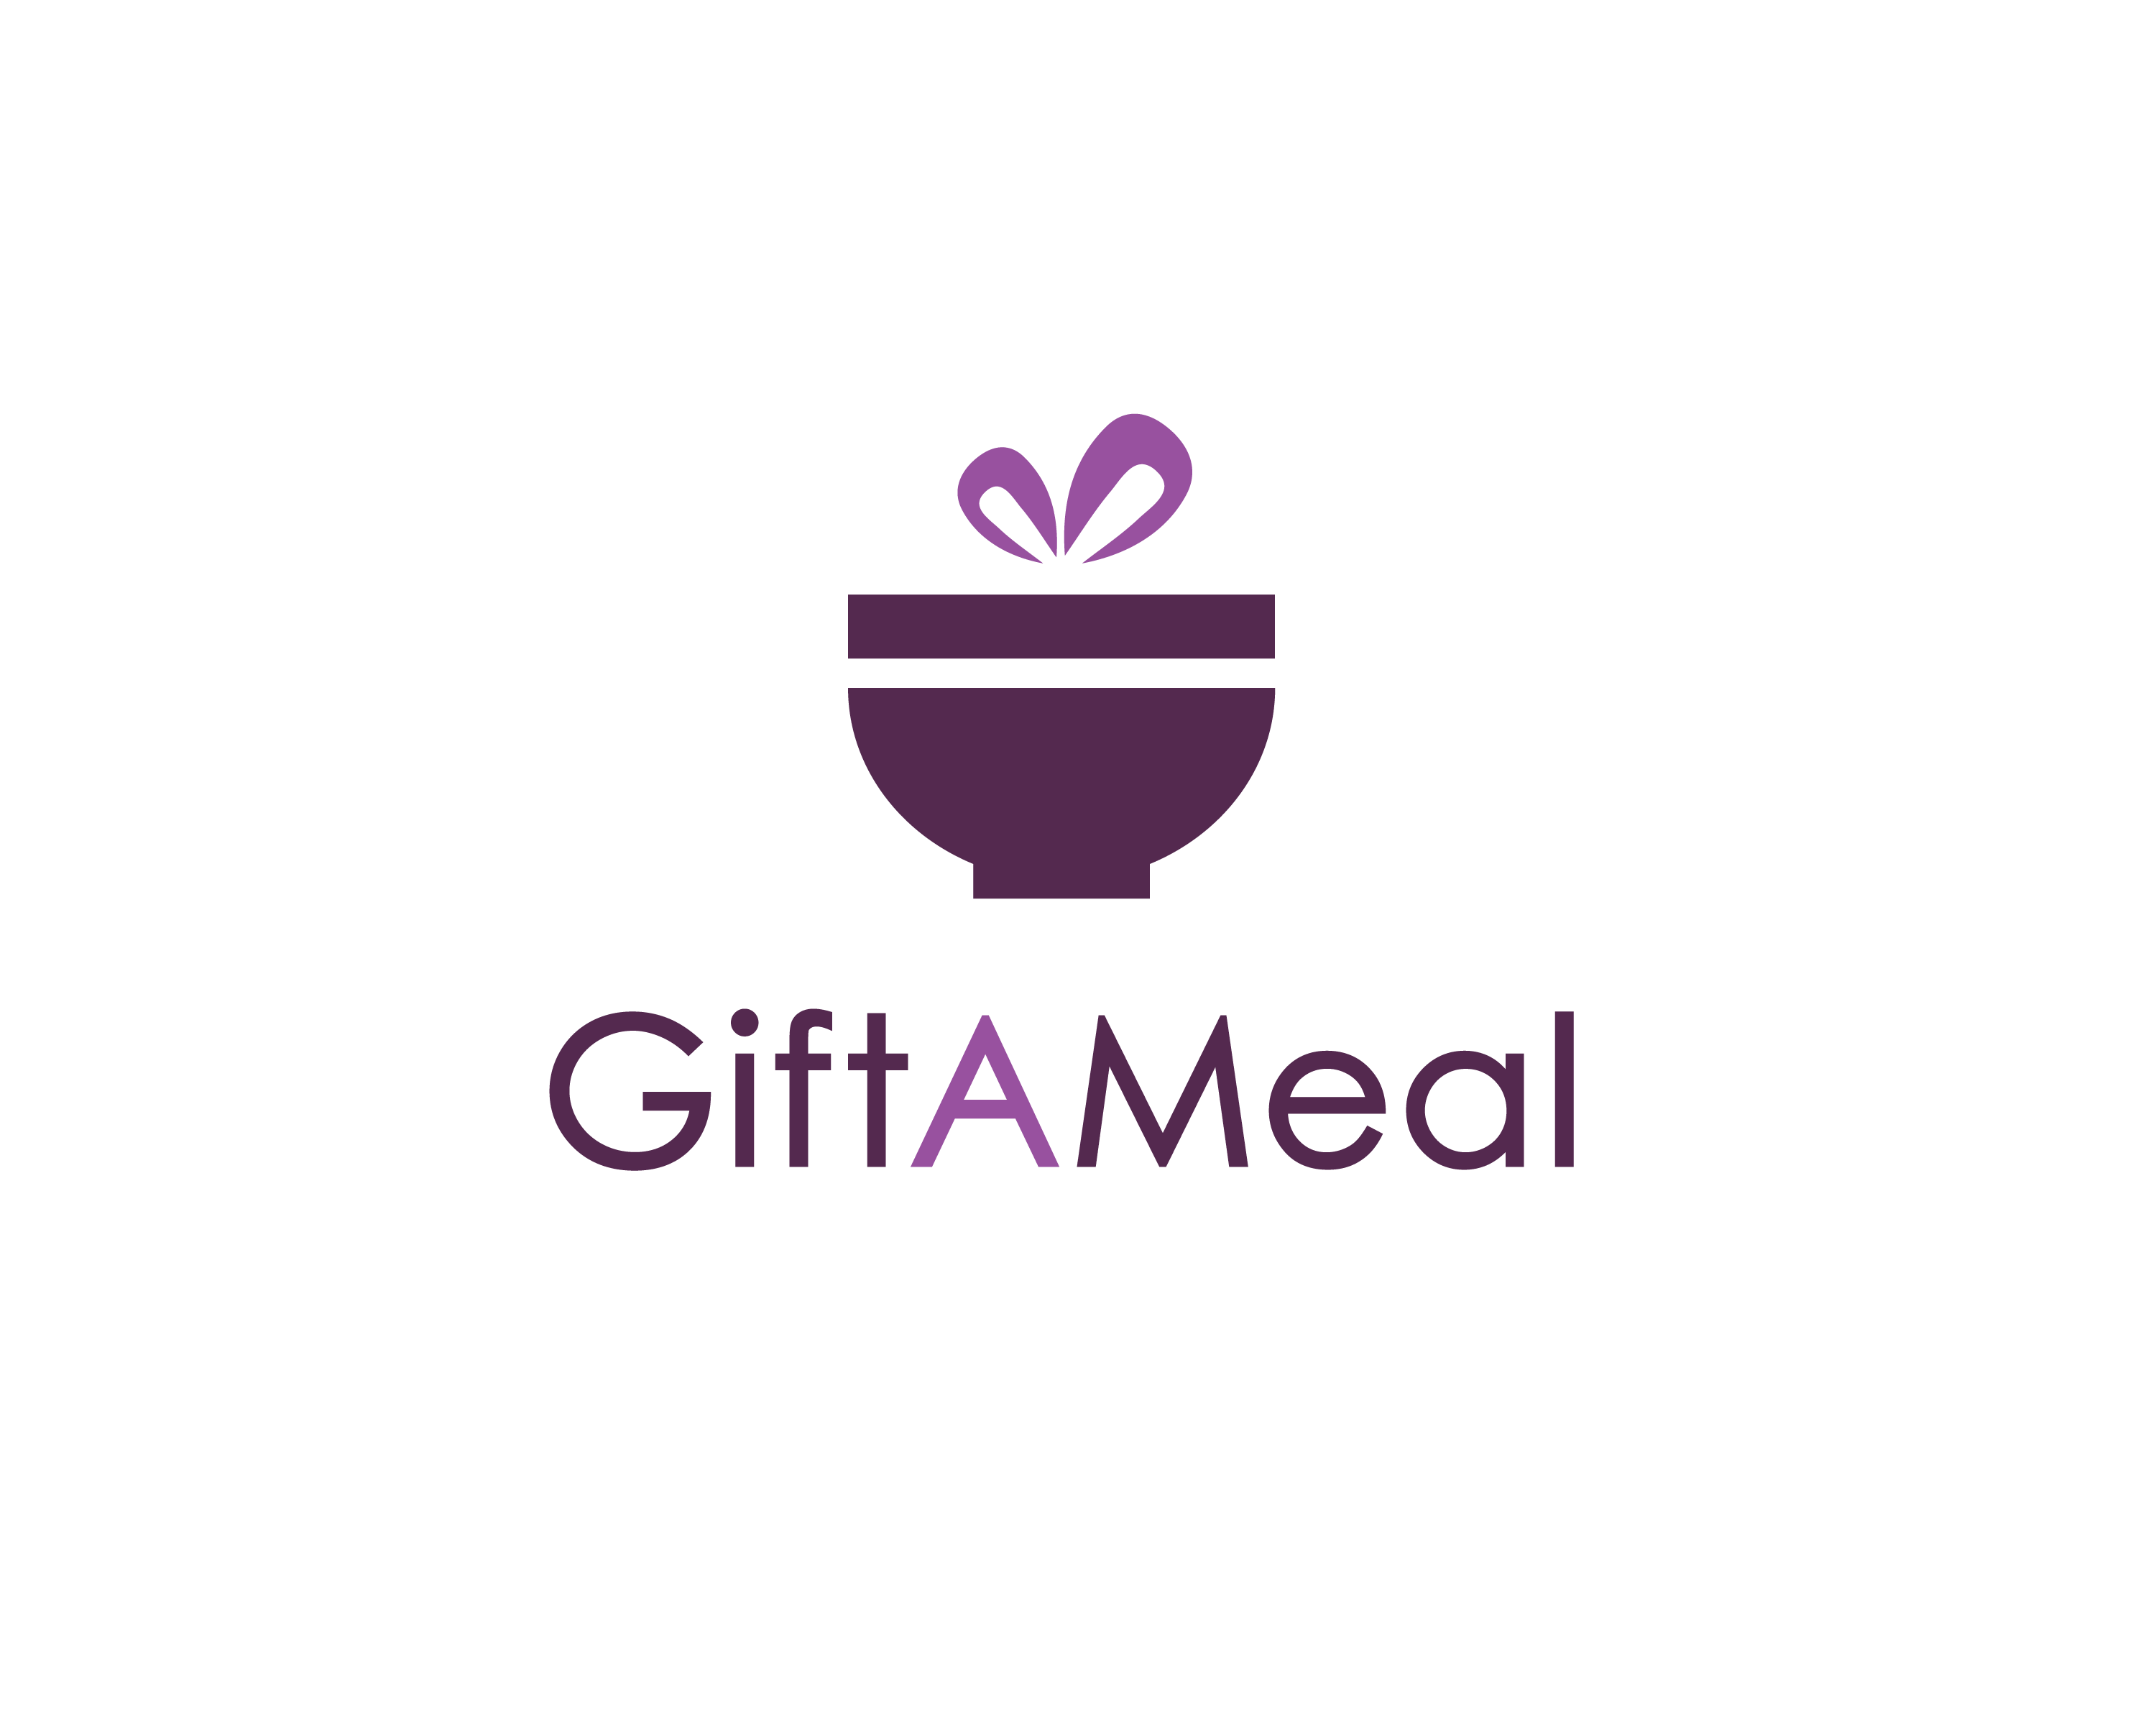 Gift A Meal